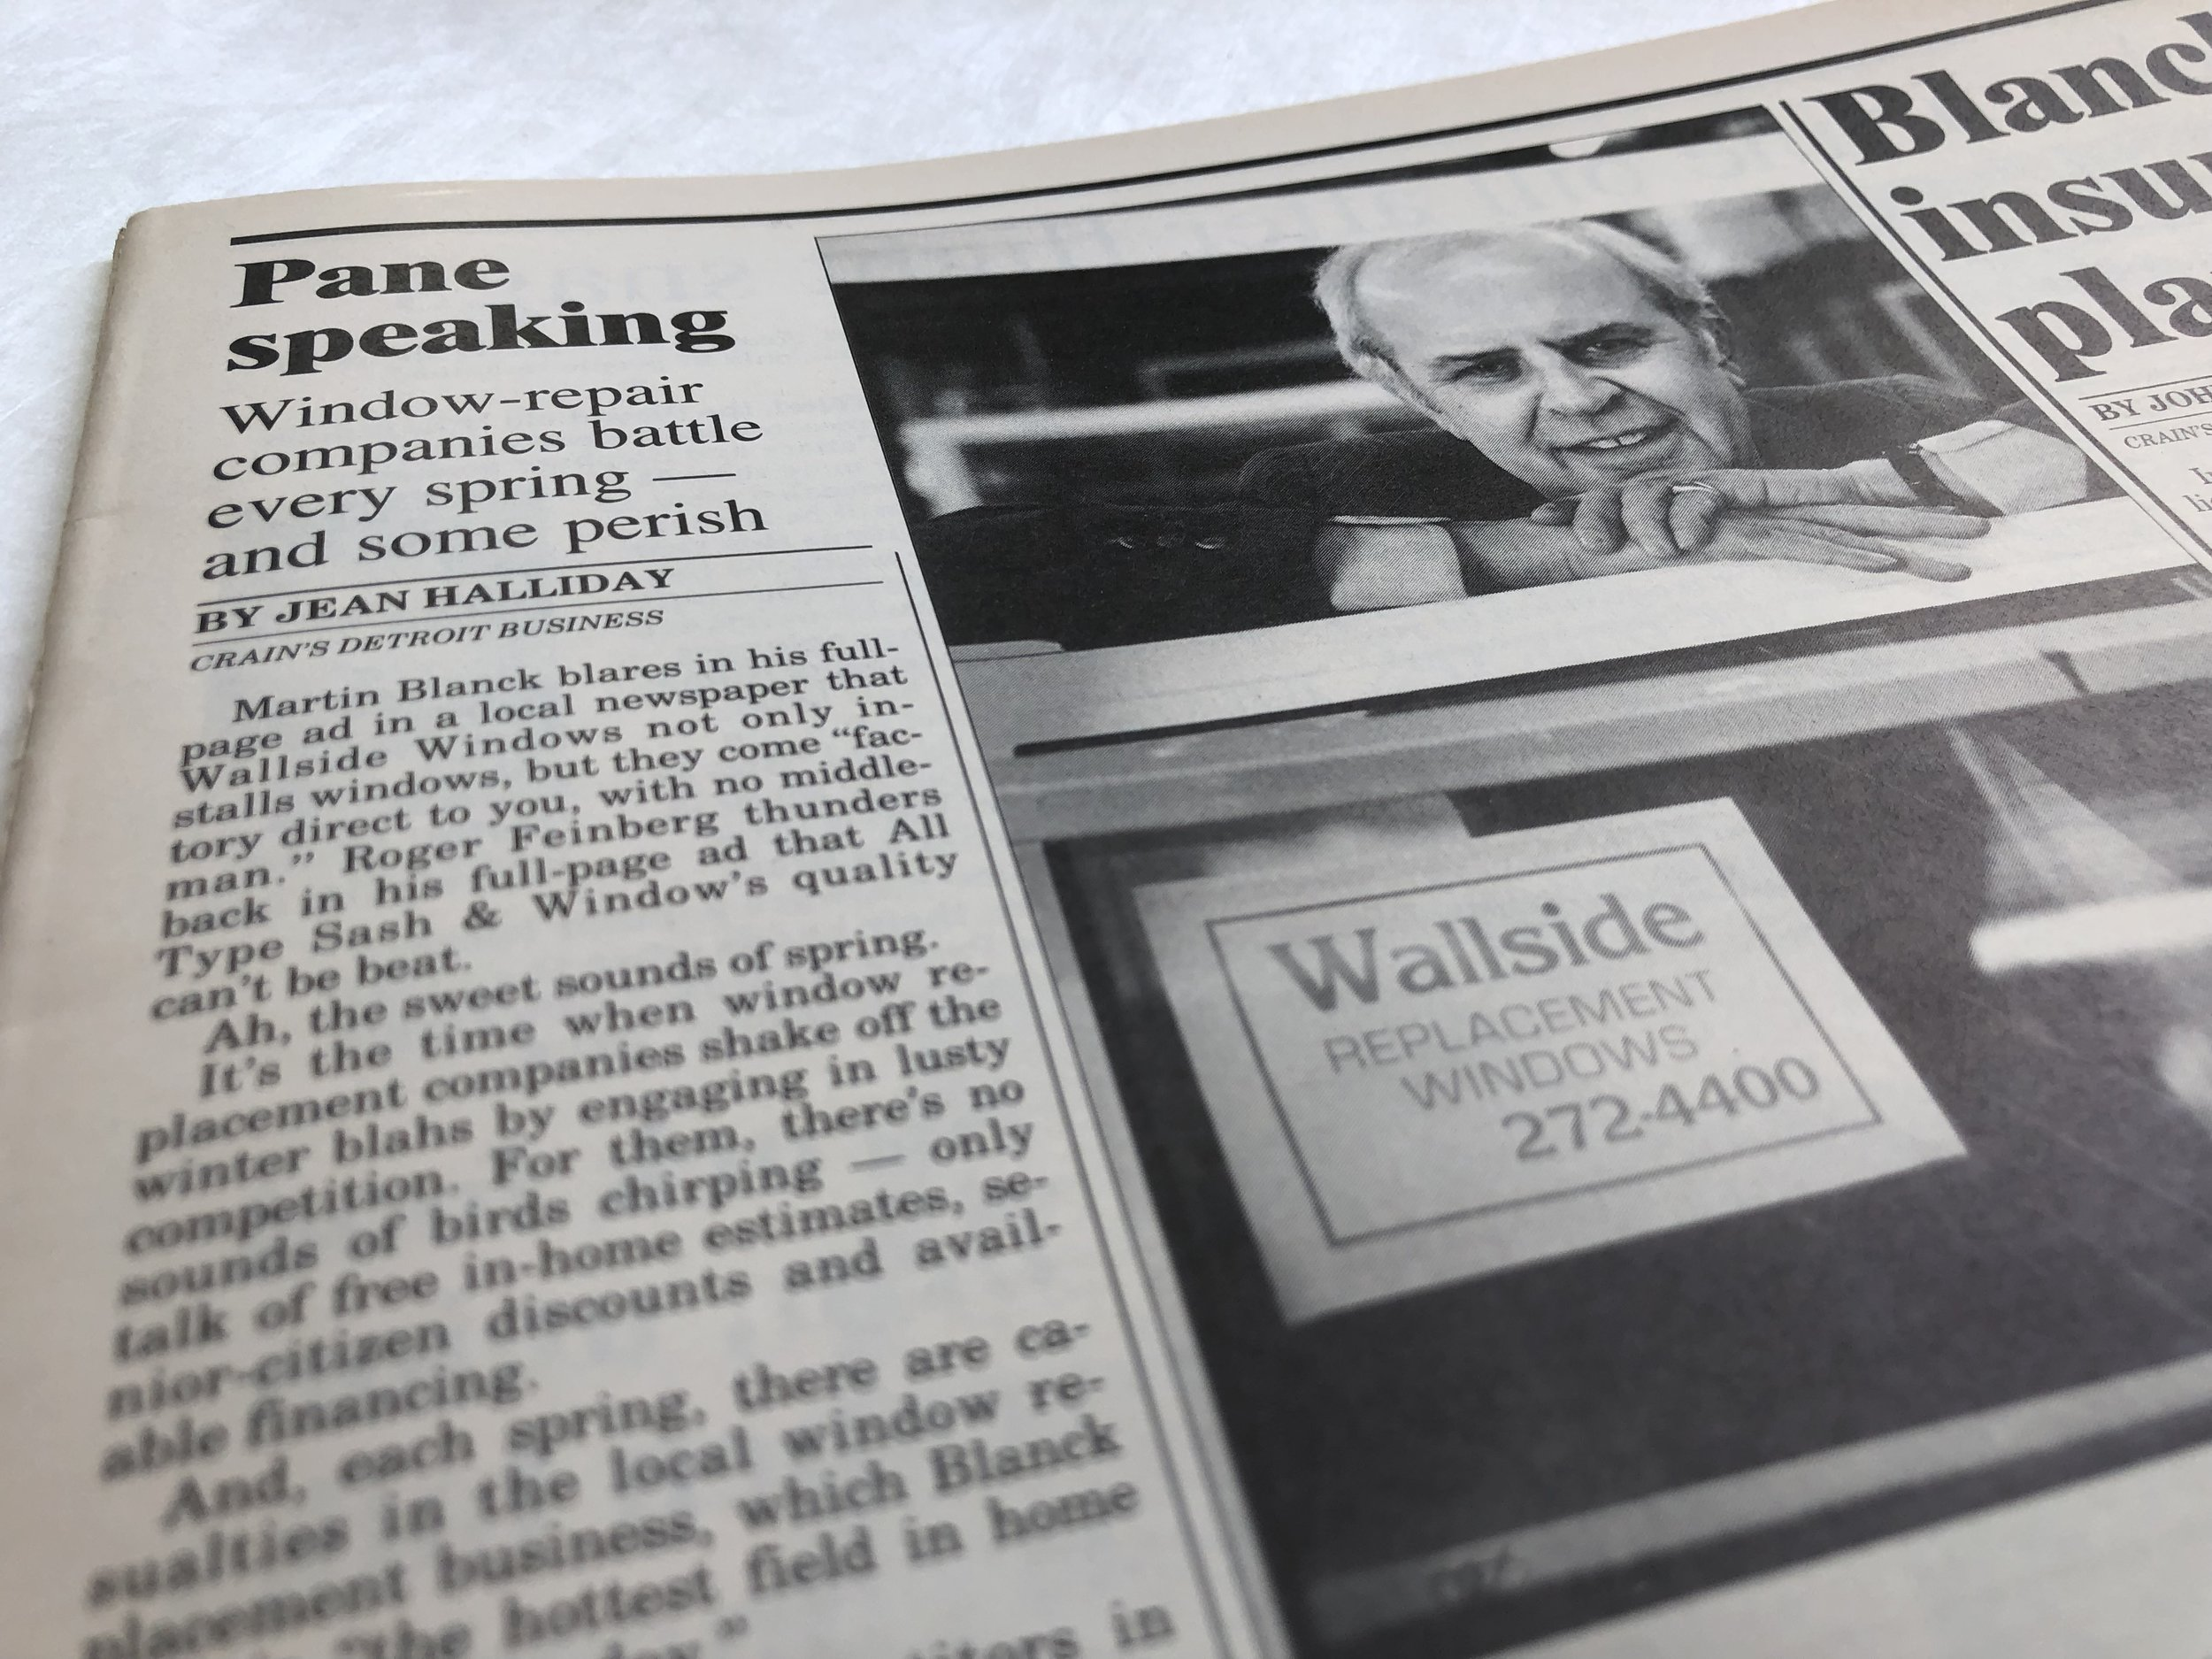 Wallside Windows Founder Martin Blanck made news with vinyl windows. Here, he appears in a 1987 edition of Crain's Detroit Business.